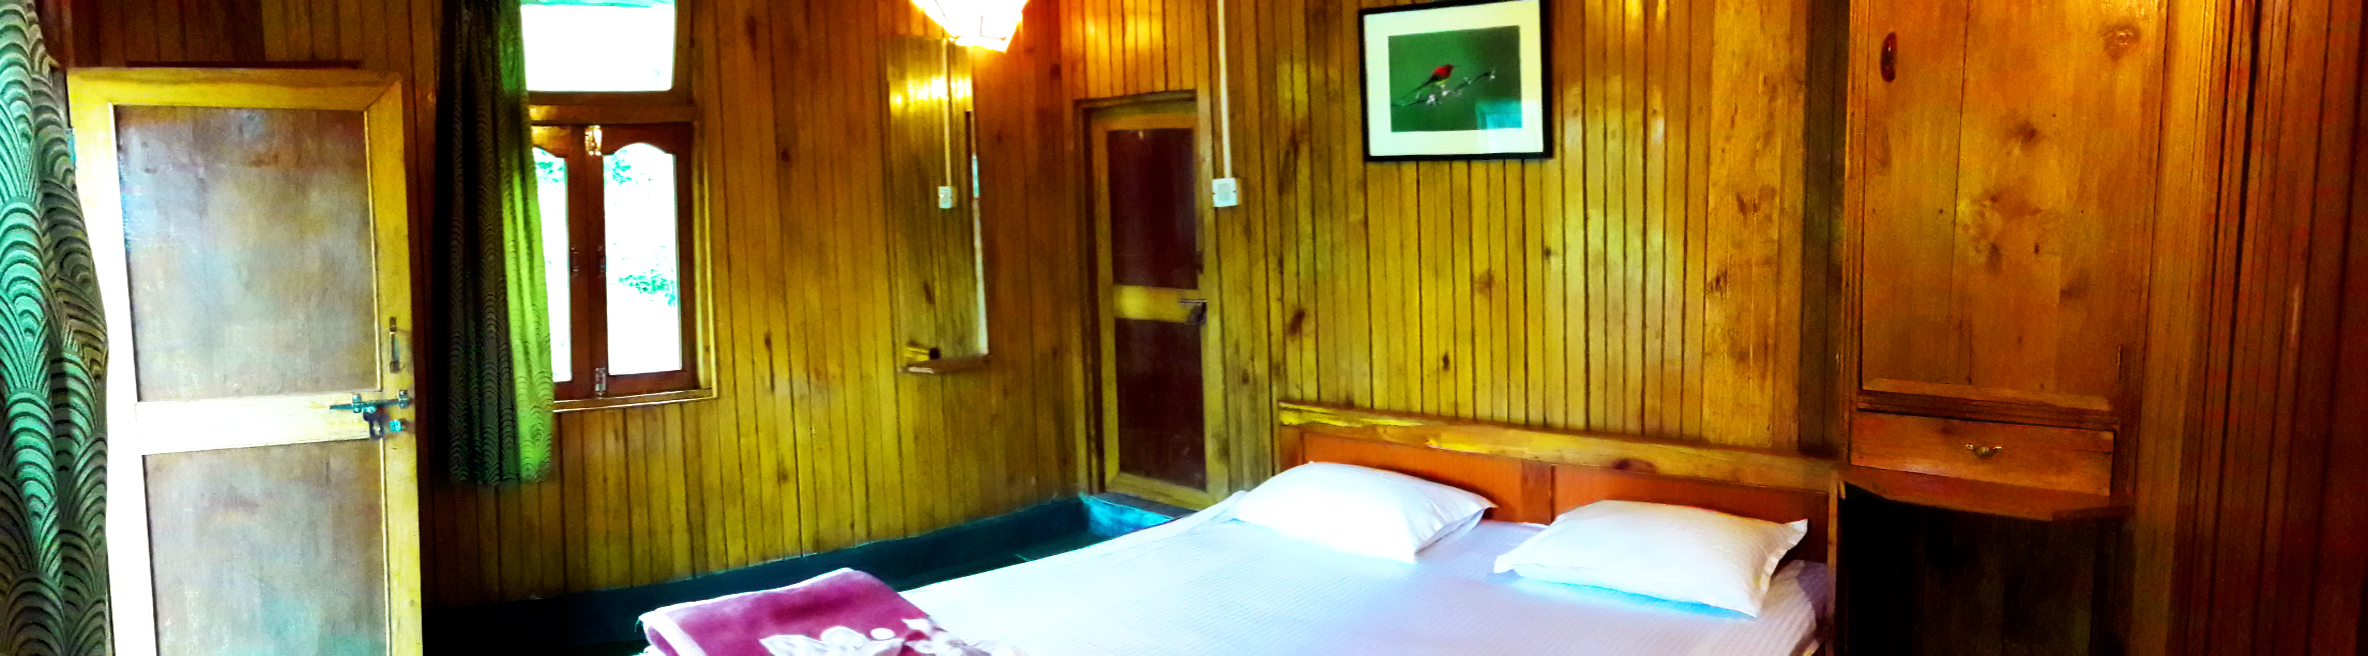 Wildflowersikkim Wild Flower Retreat Is The Romantic Resort In